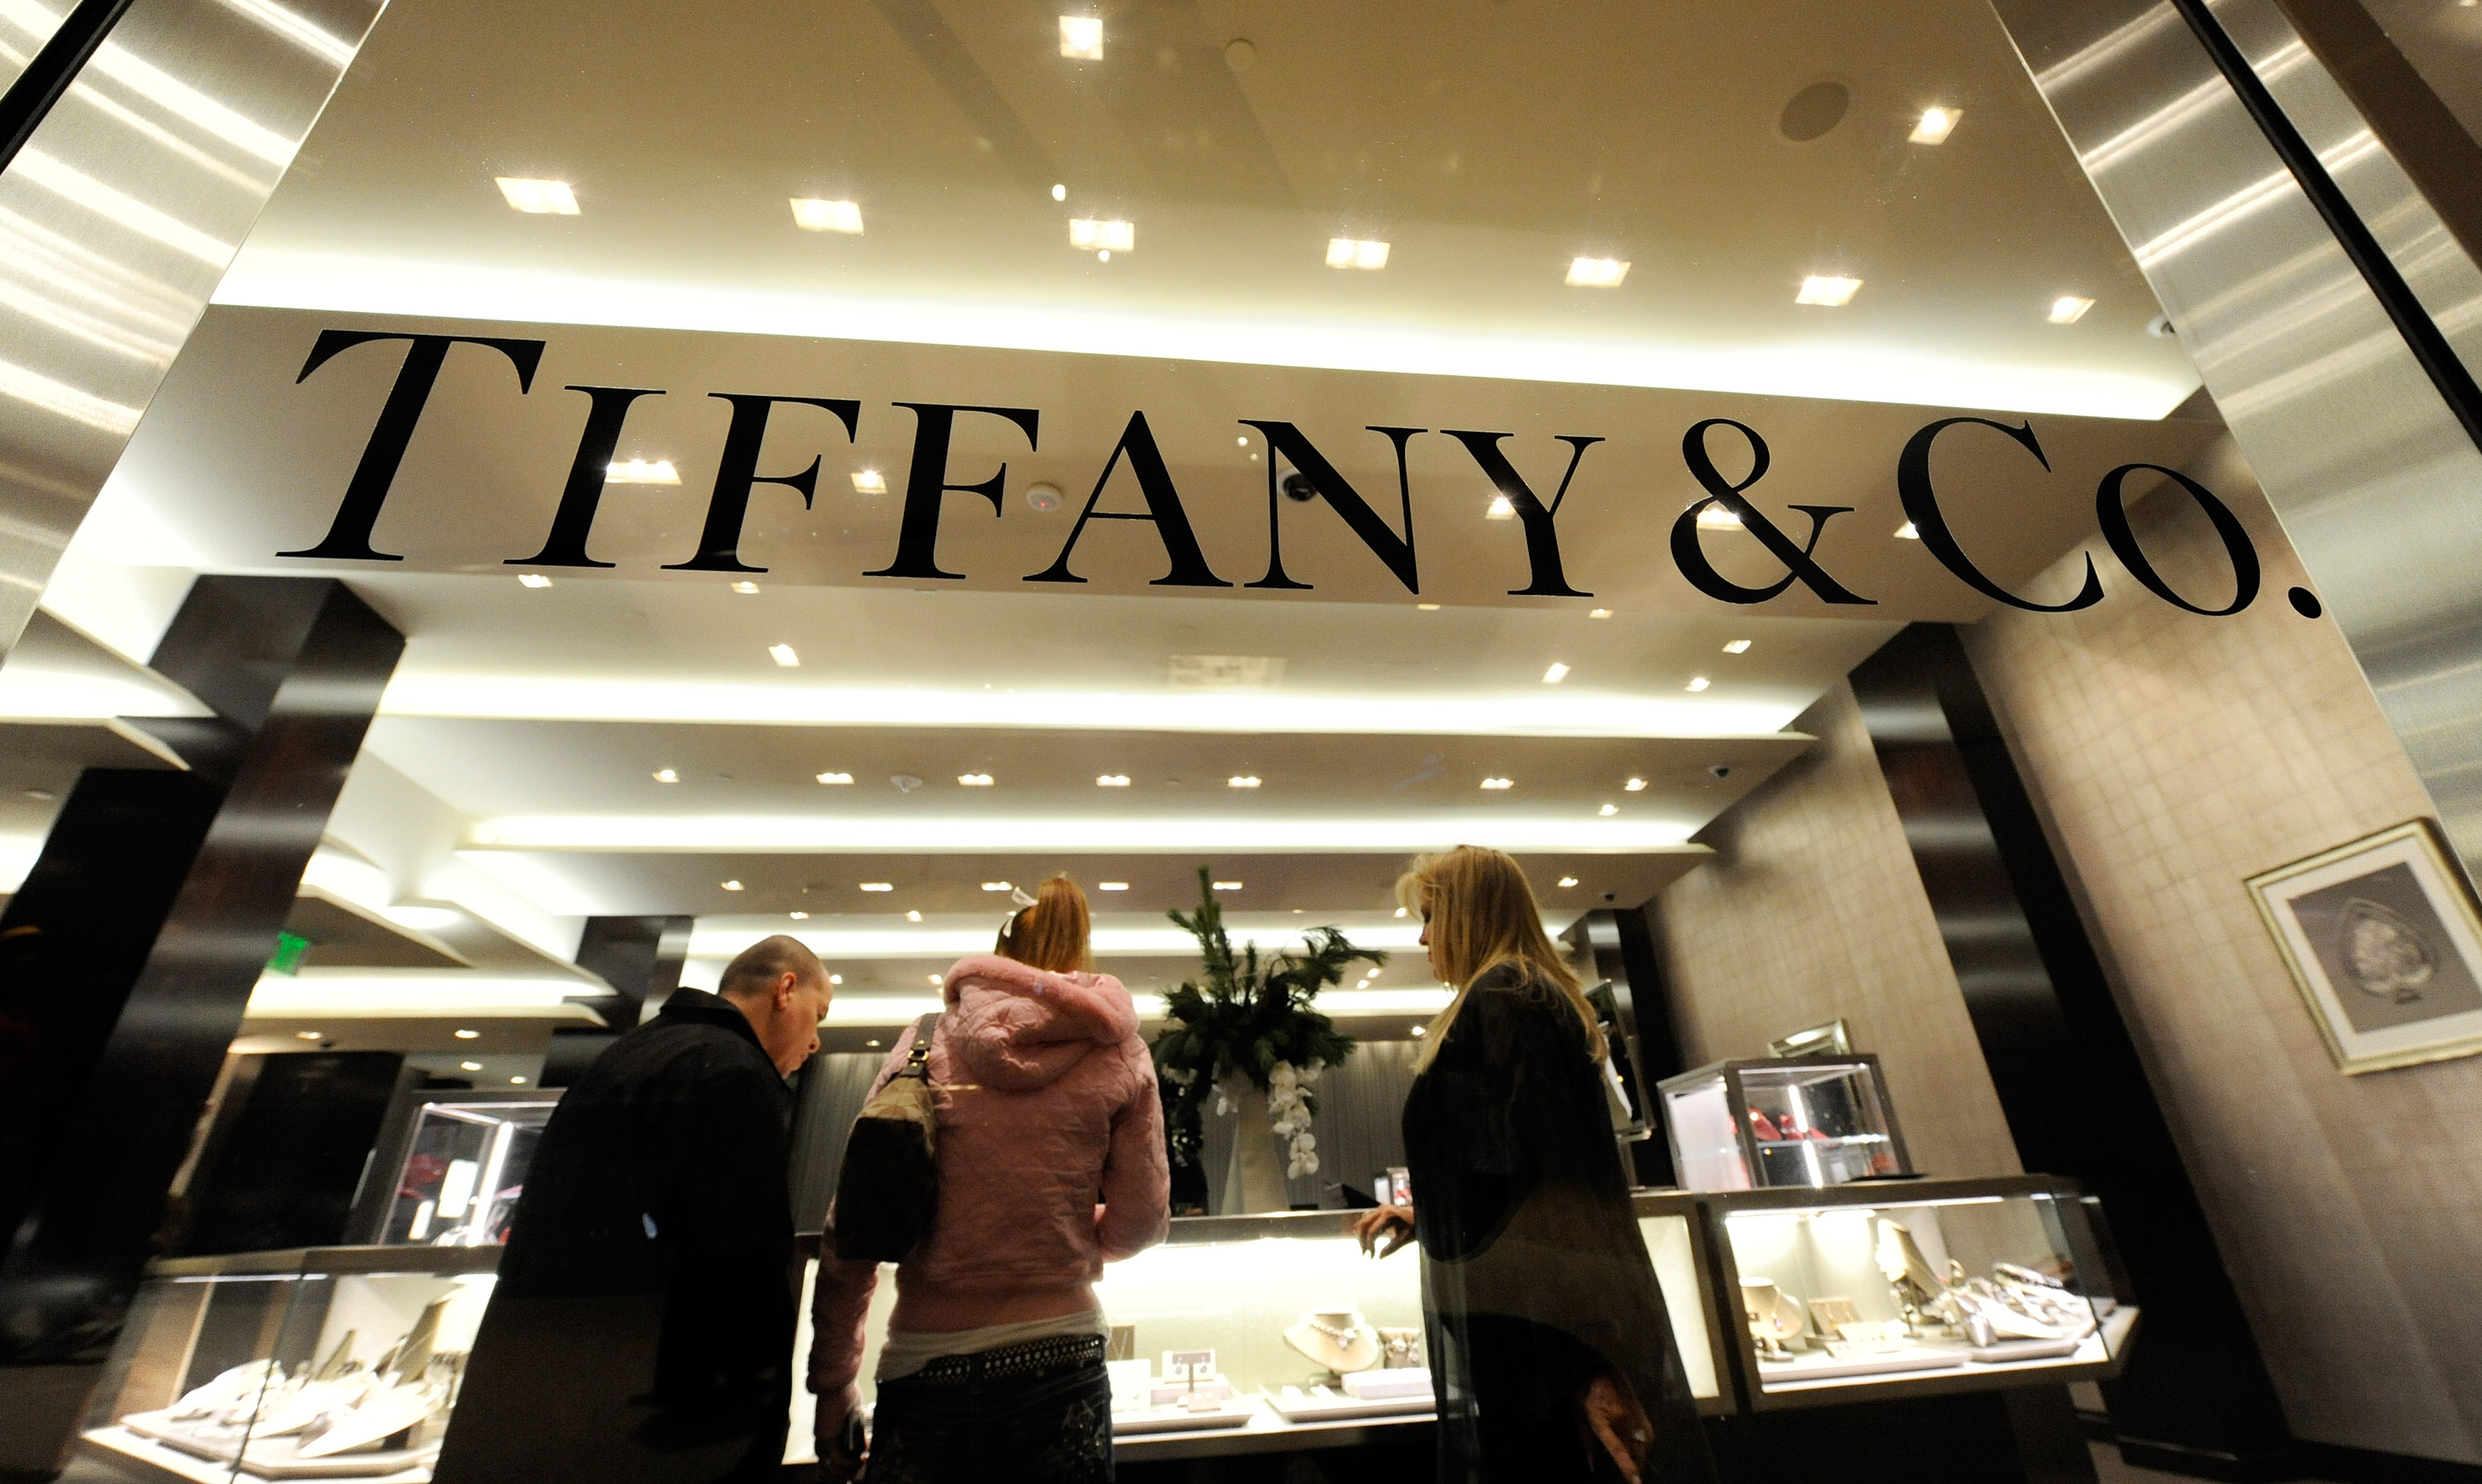 Shoppers appear at the Tiffany & Co. store during the grand opening of Crystals at CityCenter, the project's 500,000-square-foot retail and entertainment district, December 3, 2009 in Las Vegas.